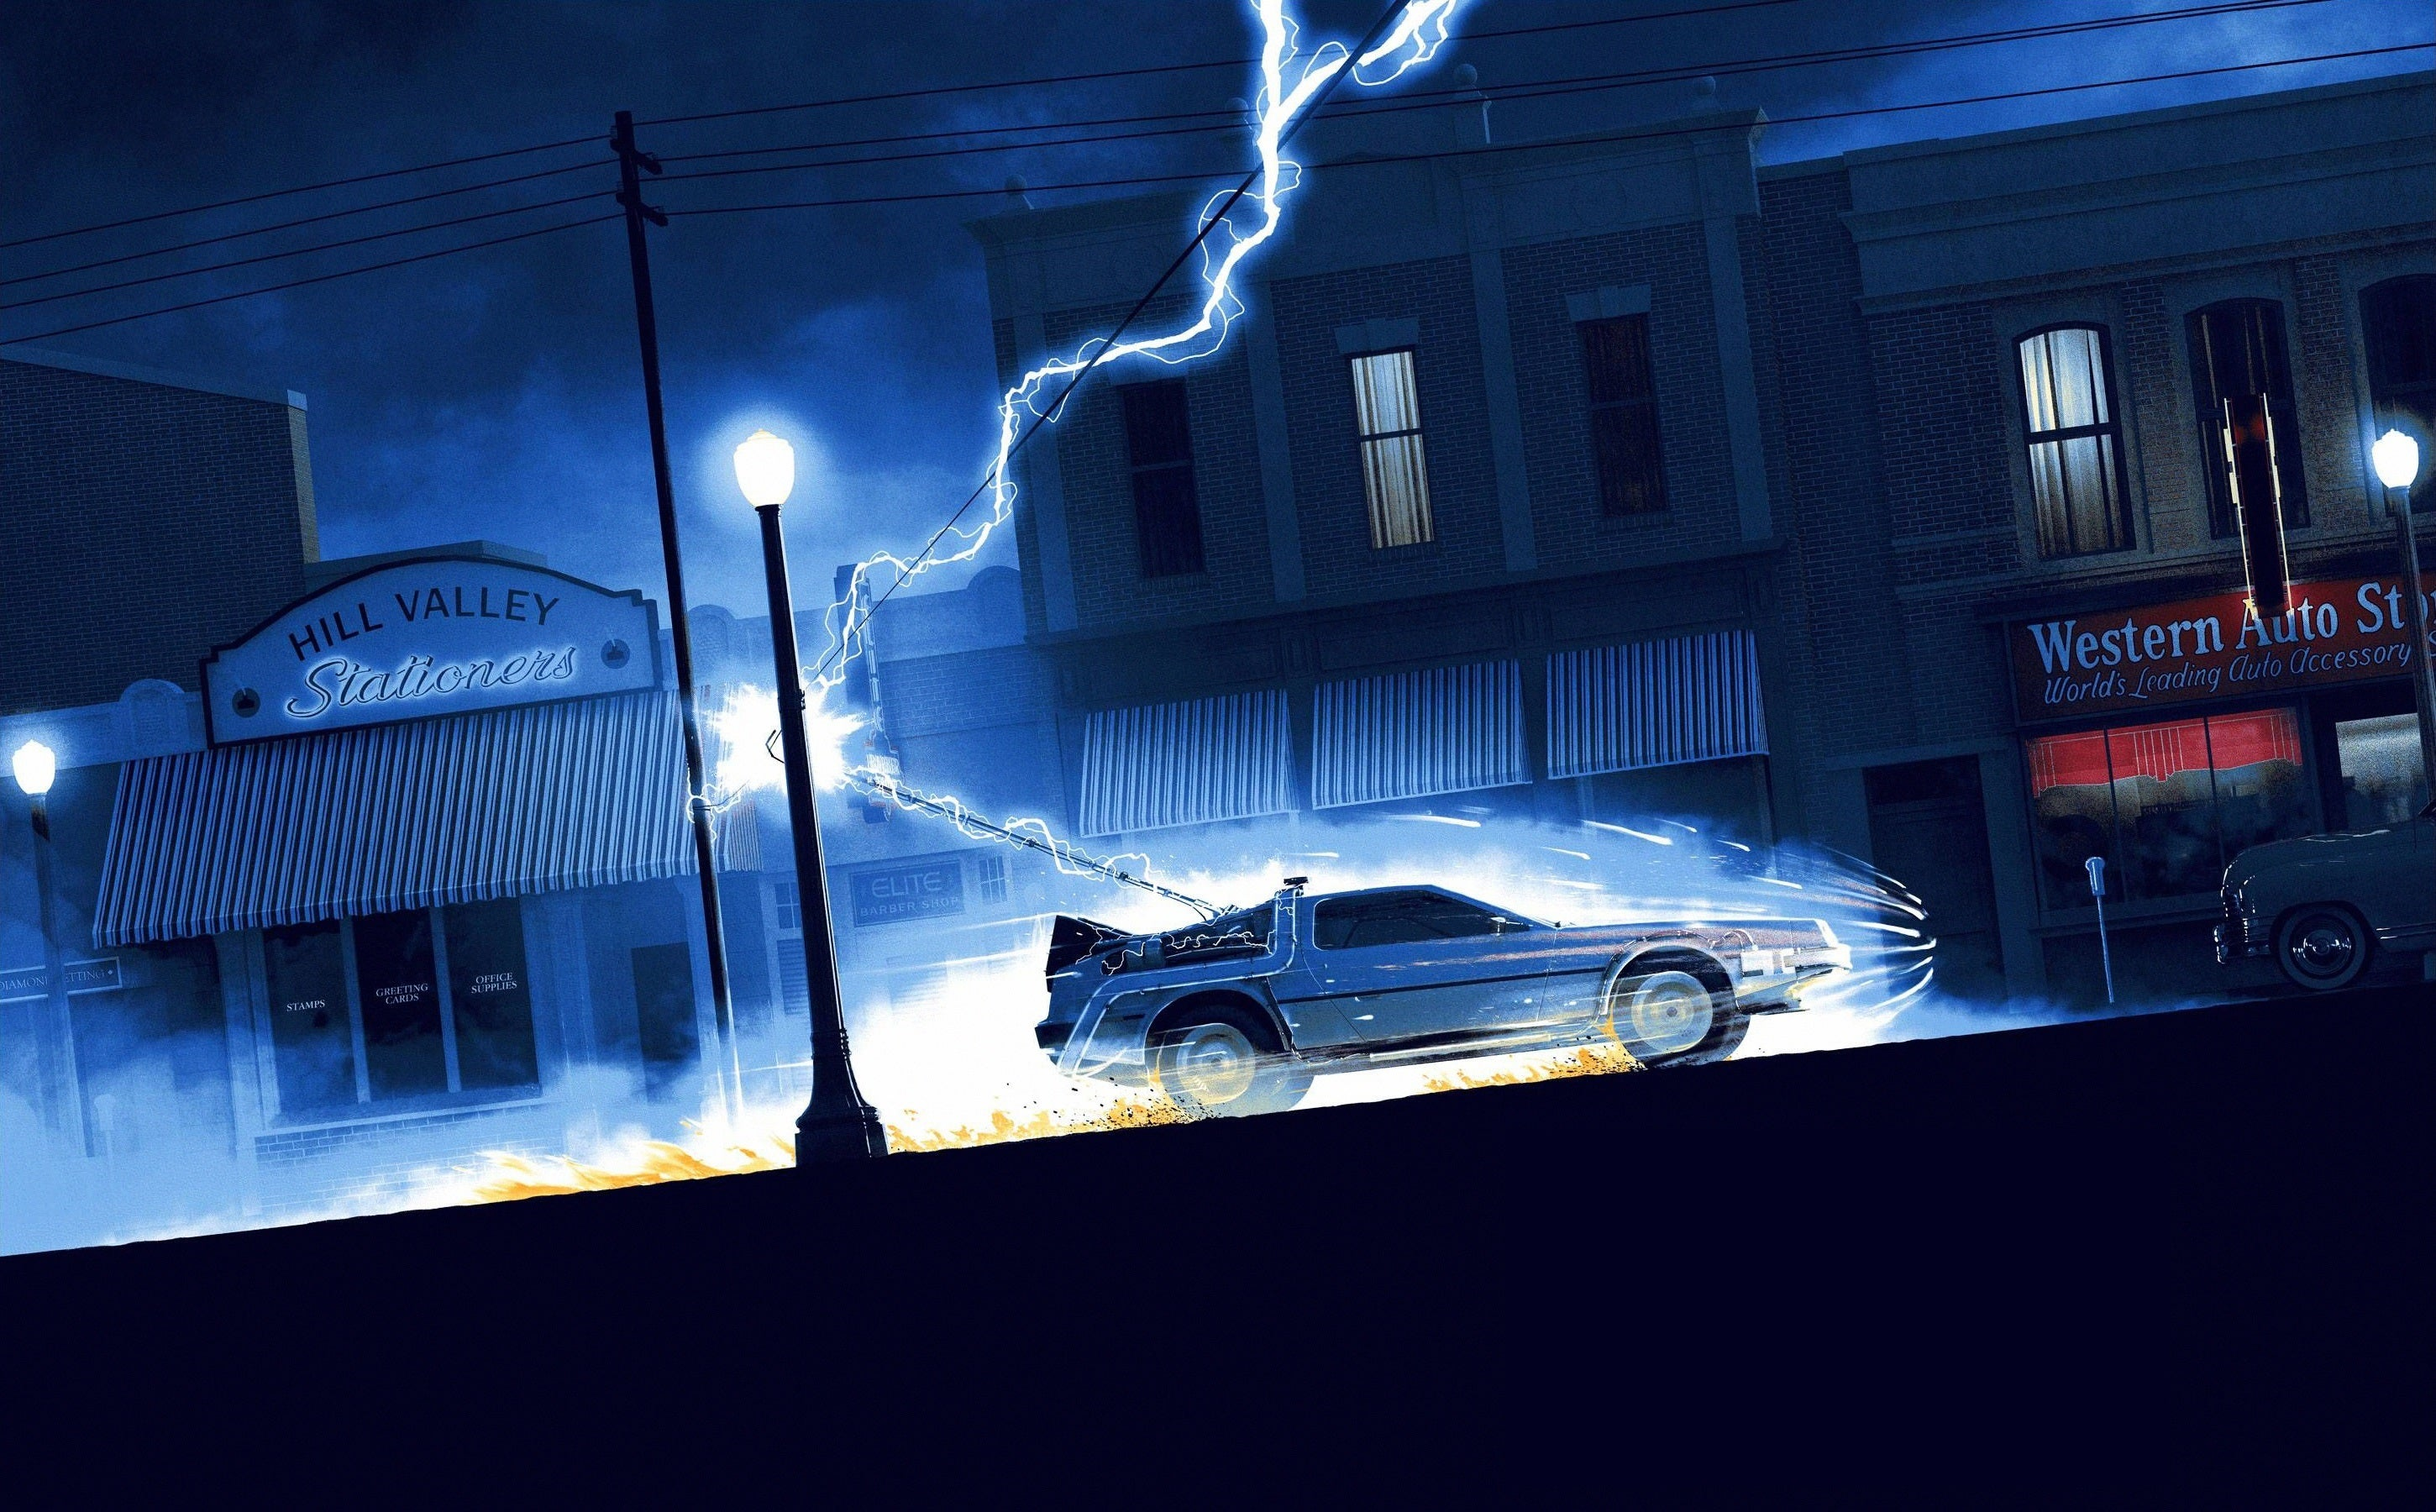 Back to the Future HD wallpaper 2900x1800